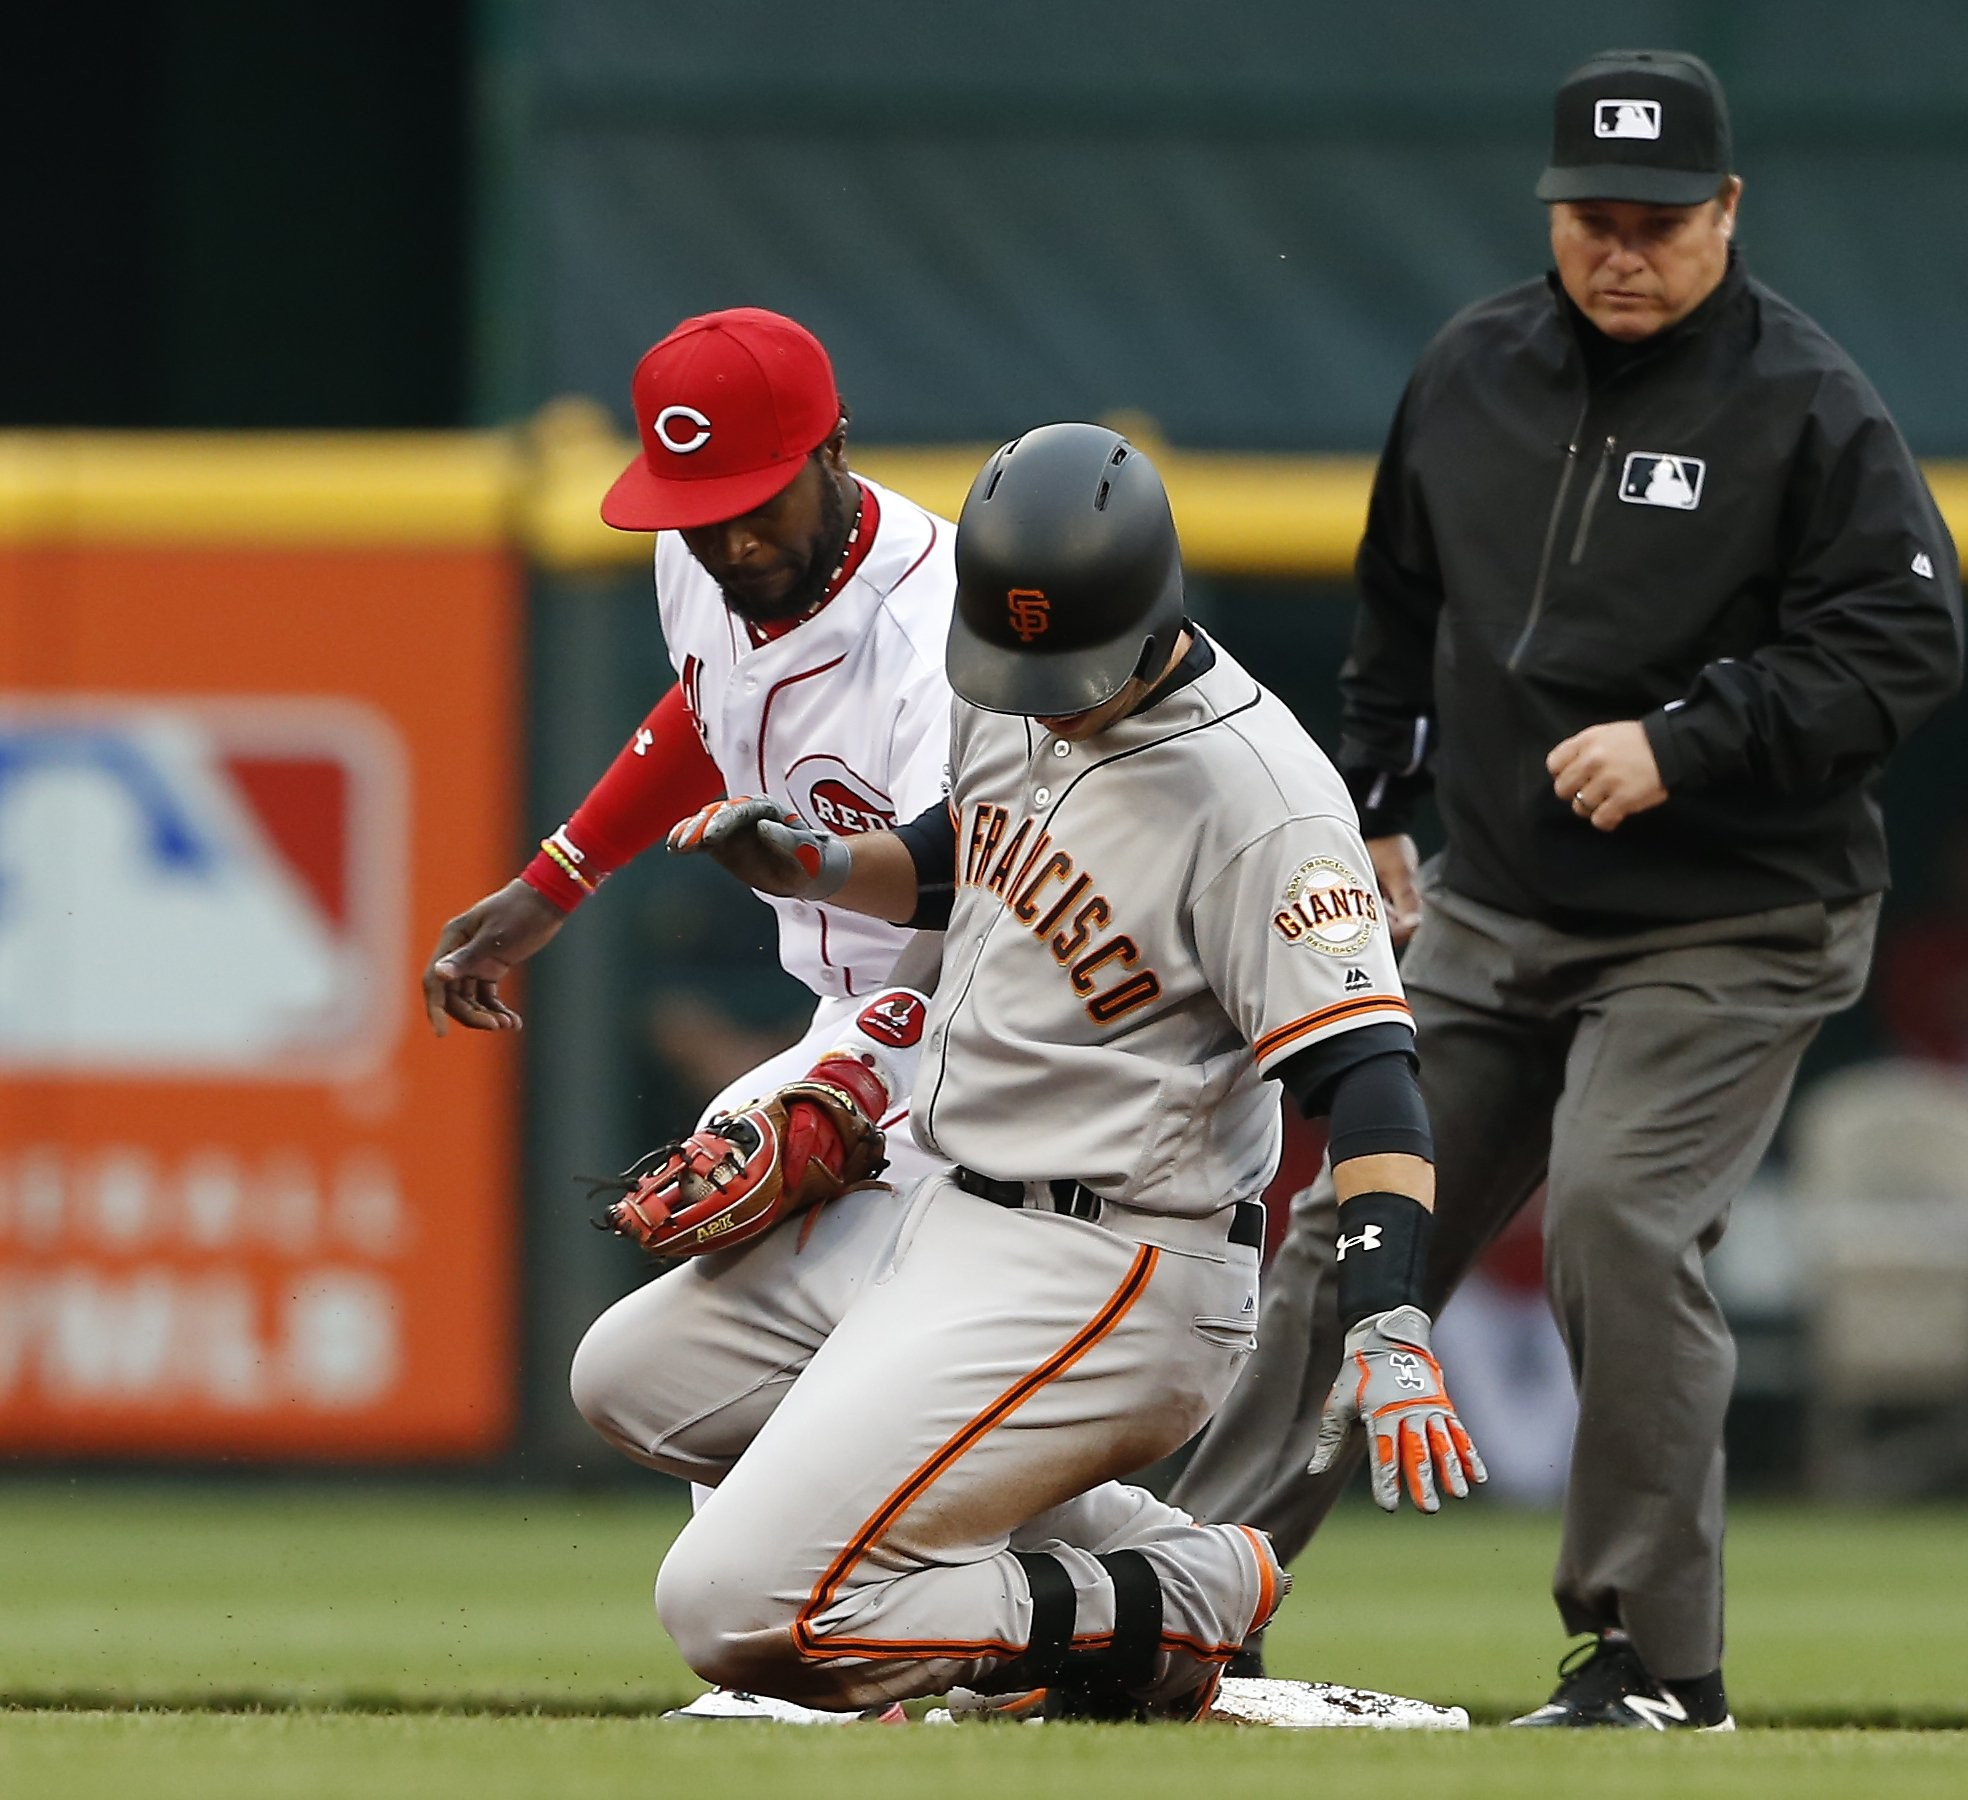 Giants' Posey discusses hitting struggles, plus Wednesday's lineup sans a  Belt – SFGate